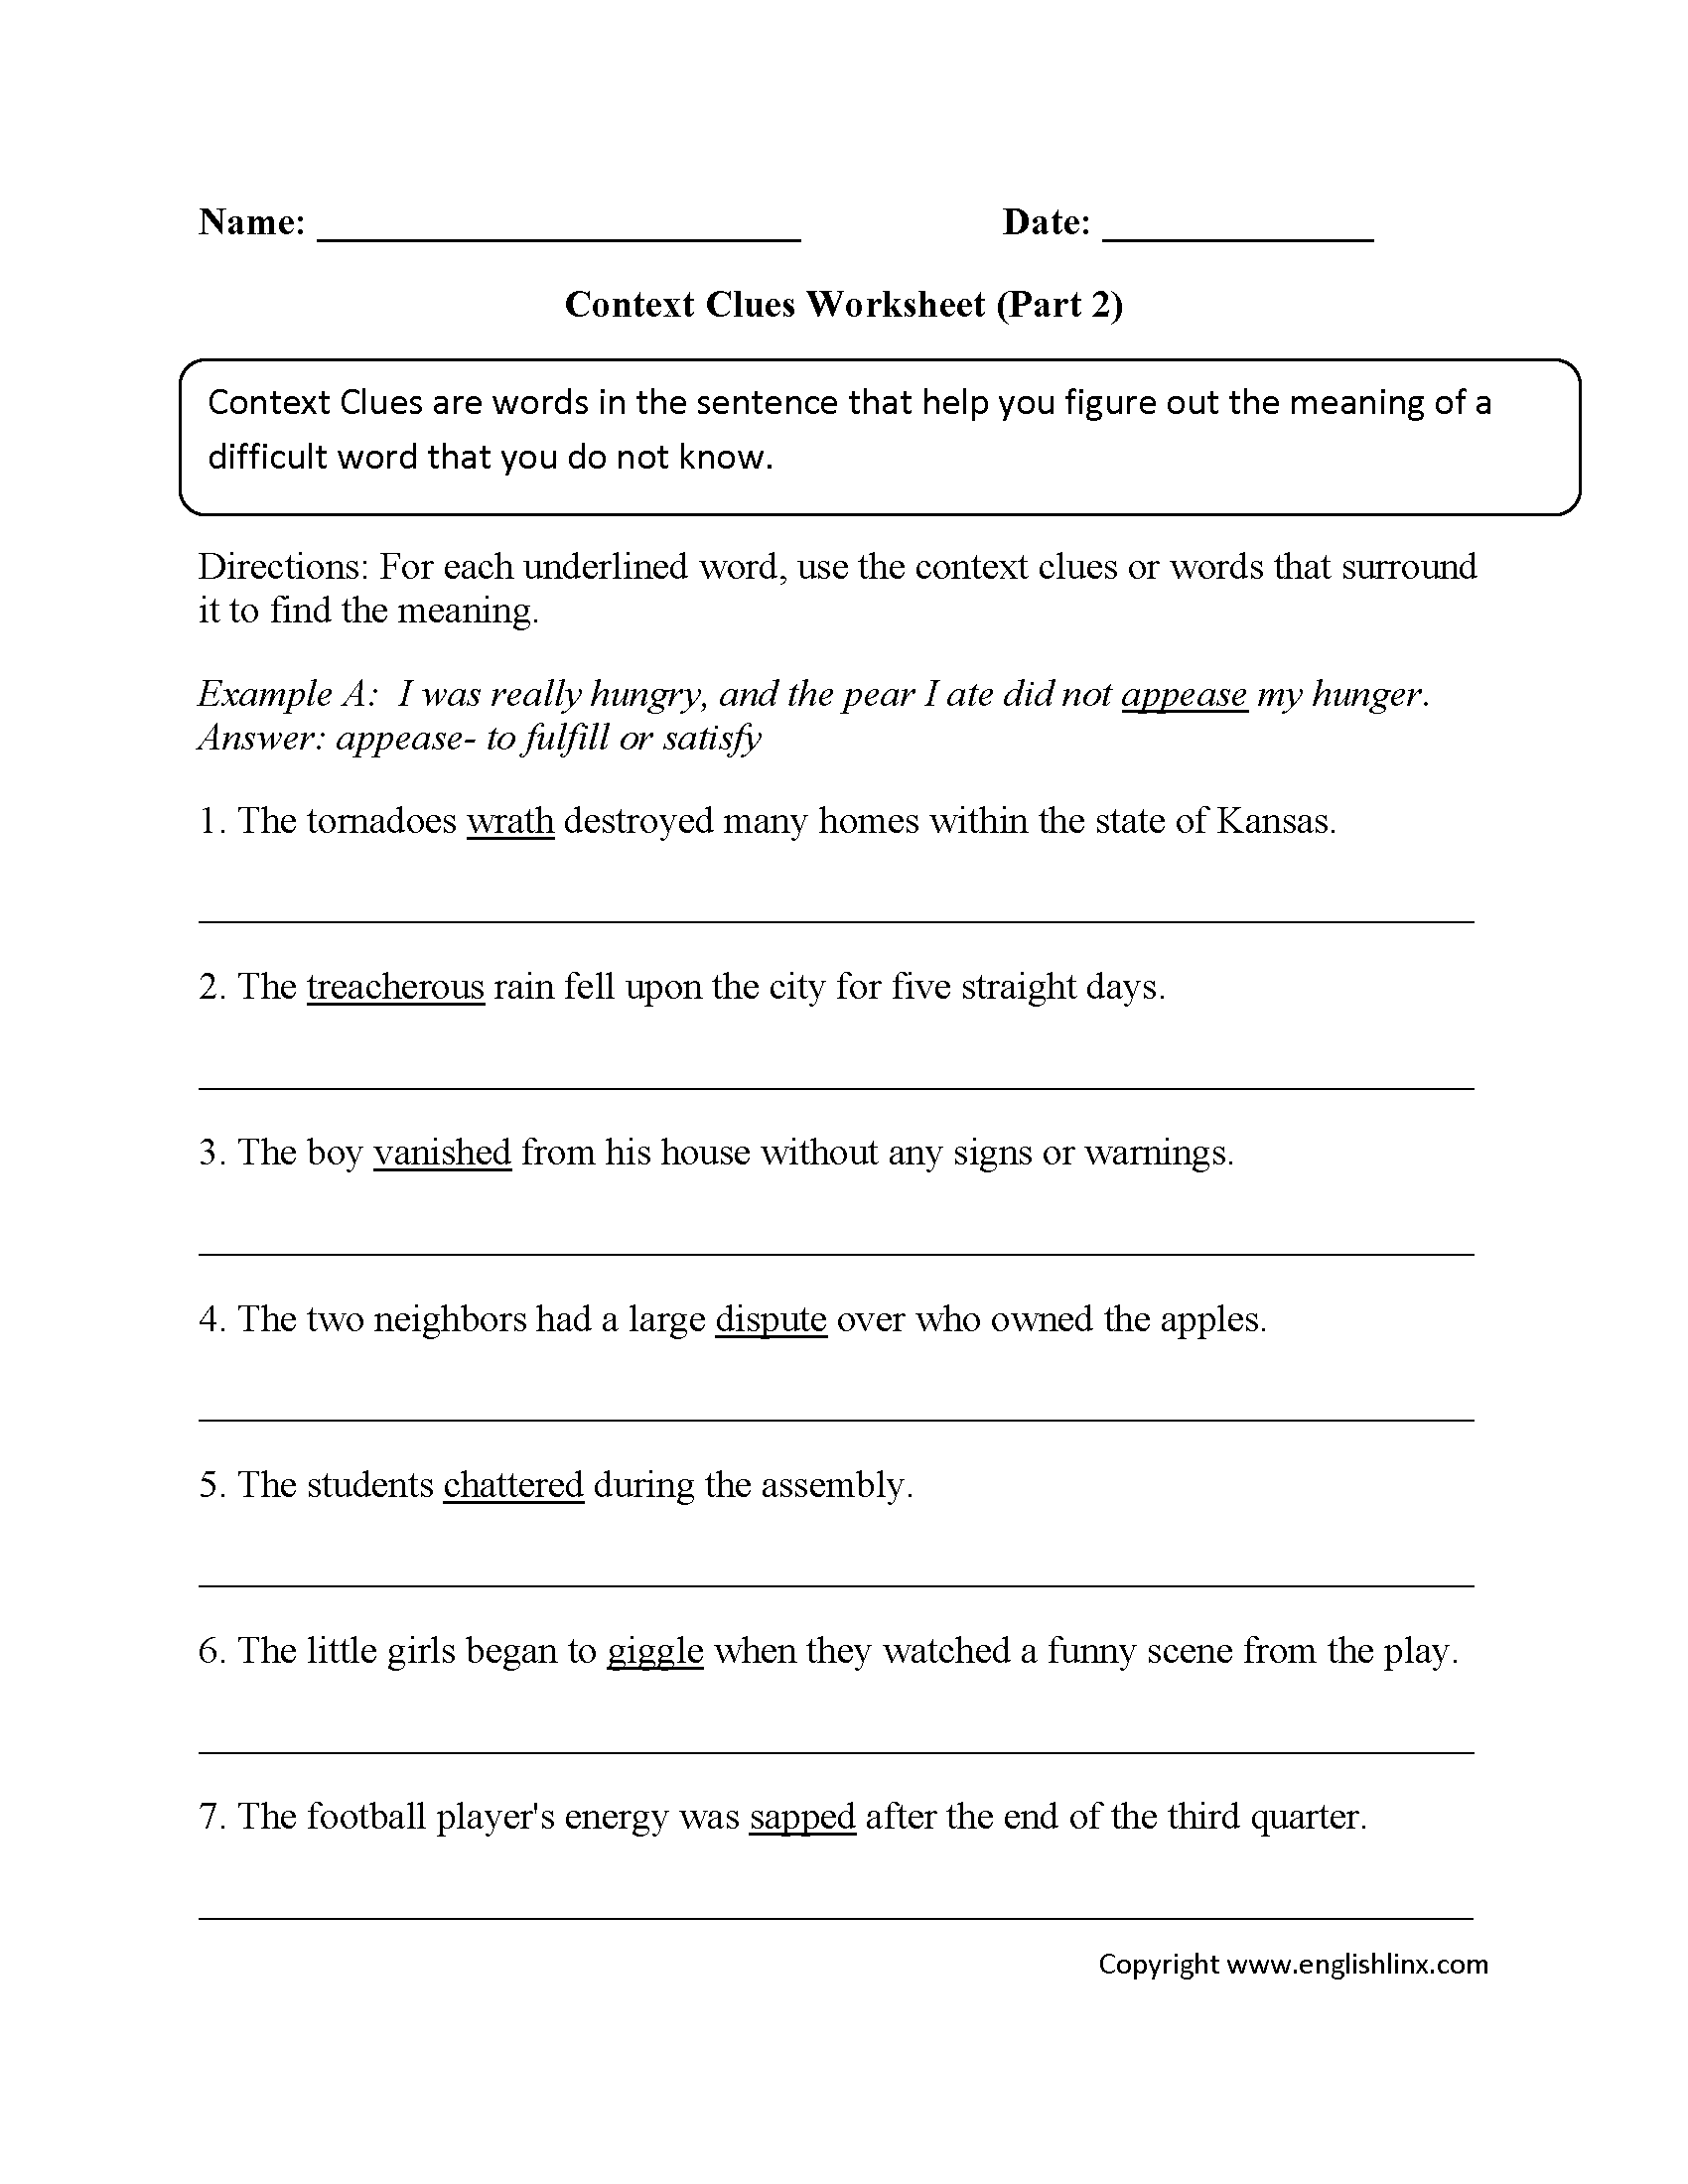 Worksheets Context Clues Worksheets context clues worksheet writing part 2 intermediate devin intermediate